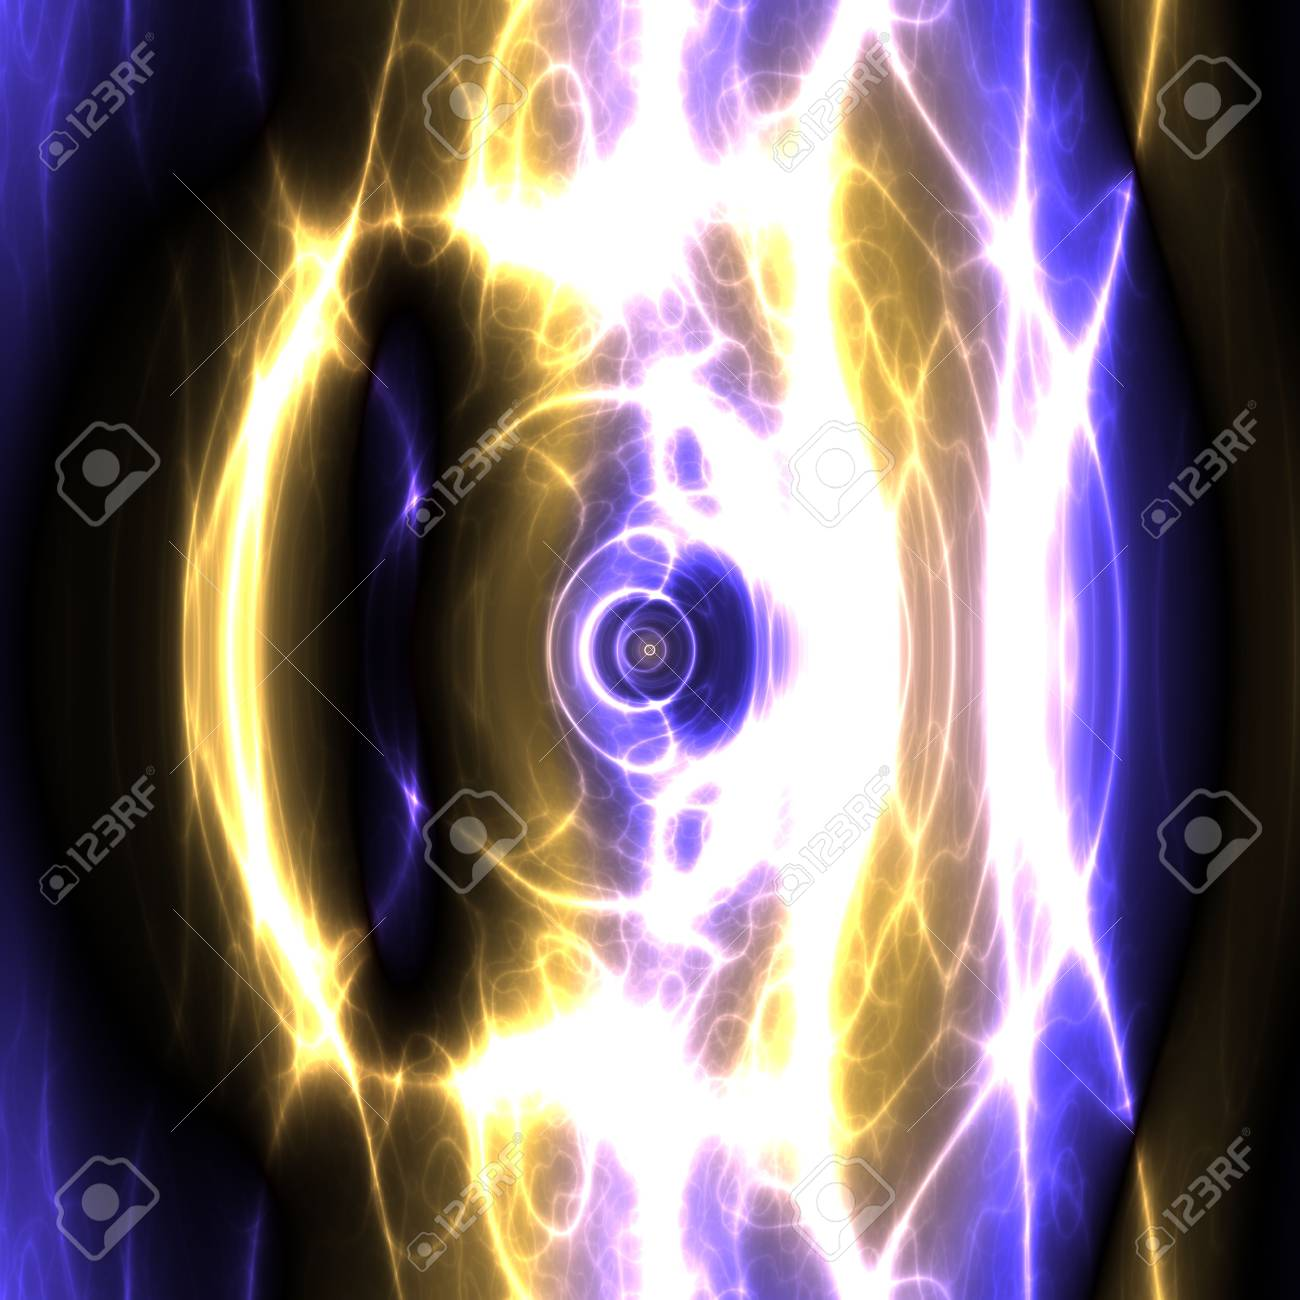 Swirly wavy circular flowing energy and colors, abstract illustration Stock Illustration - 5092575